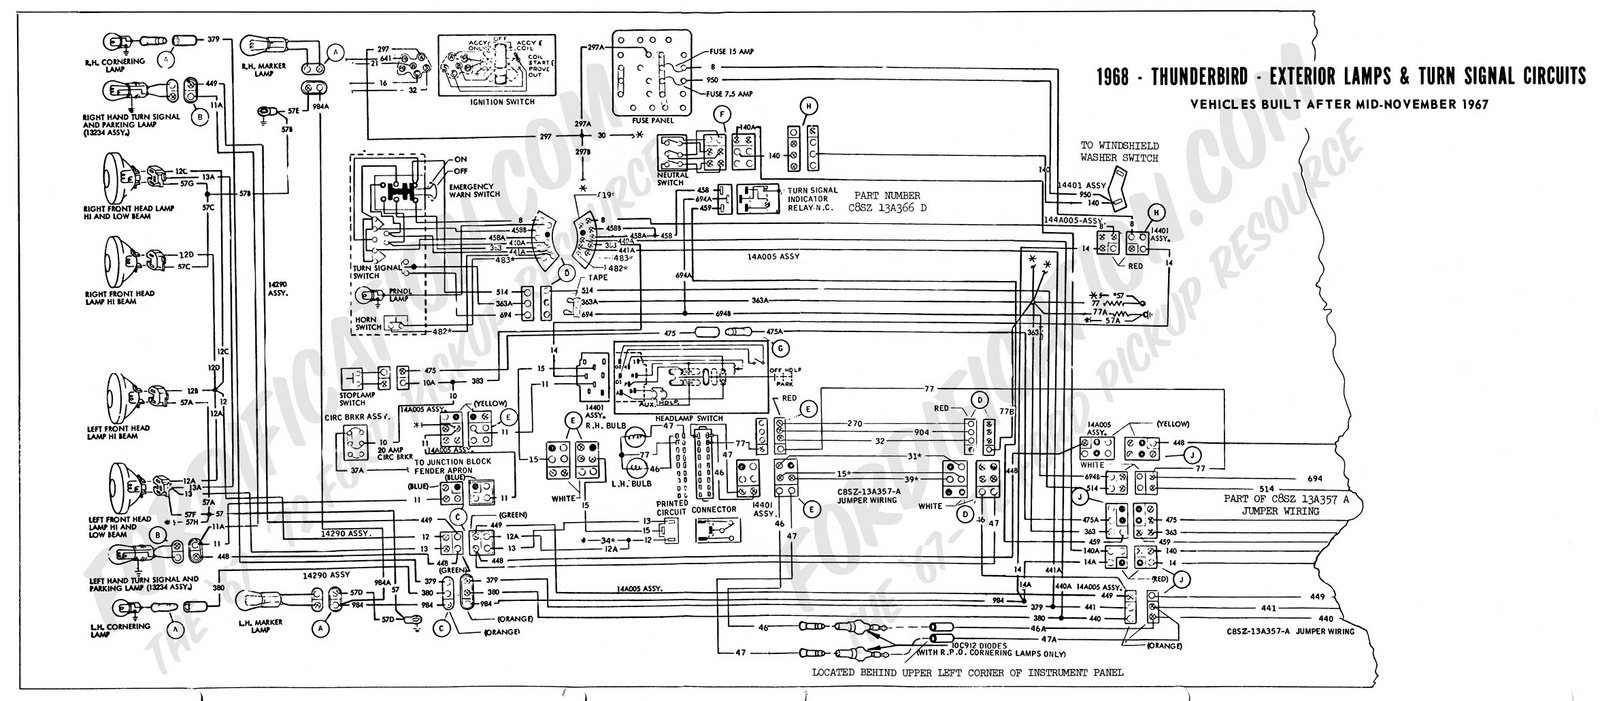 Wiring Diagram For 1961 Ford Falcon Html